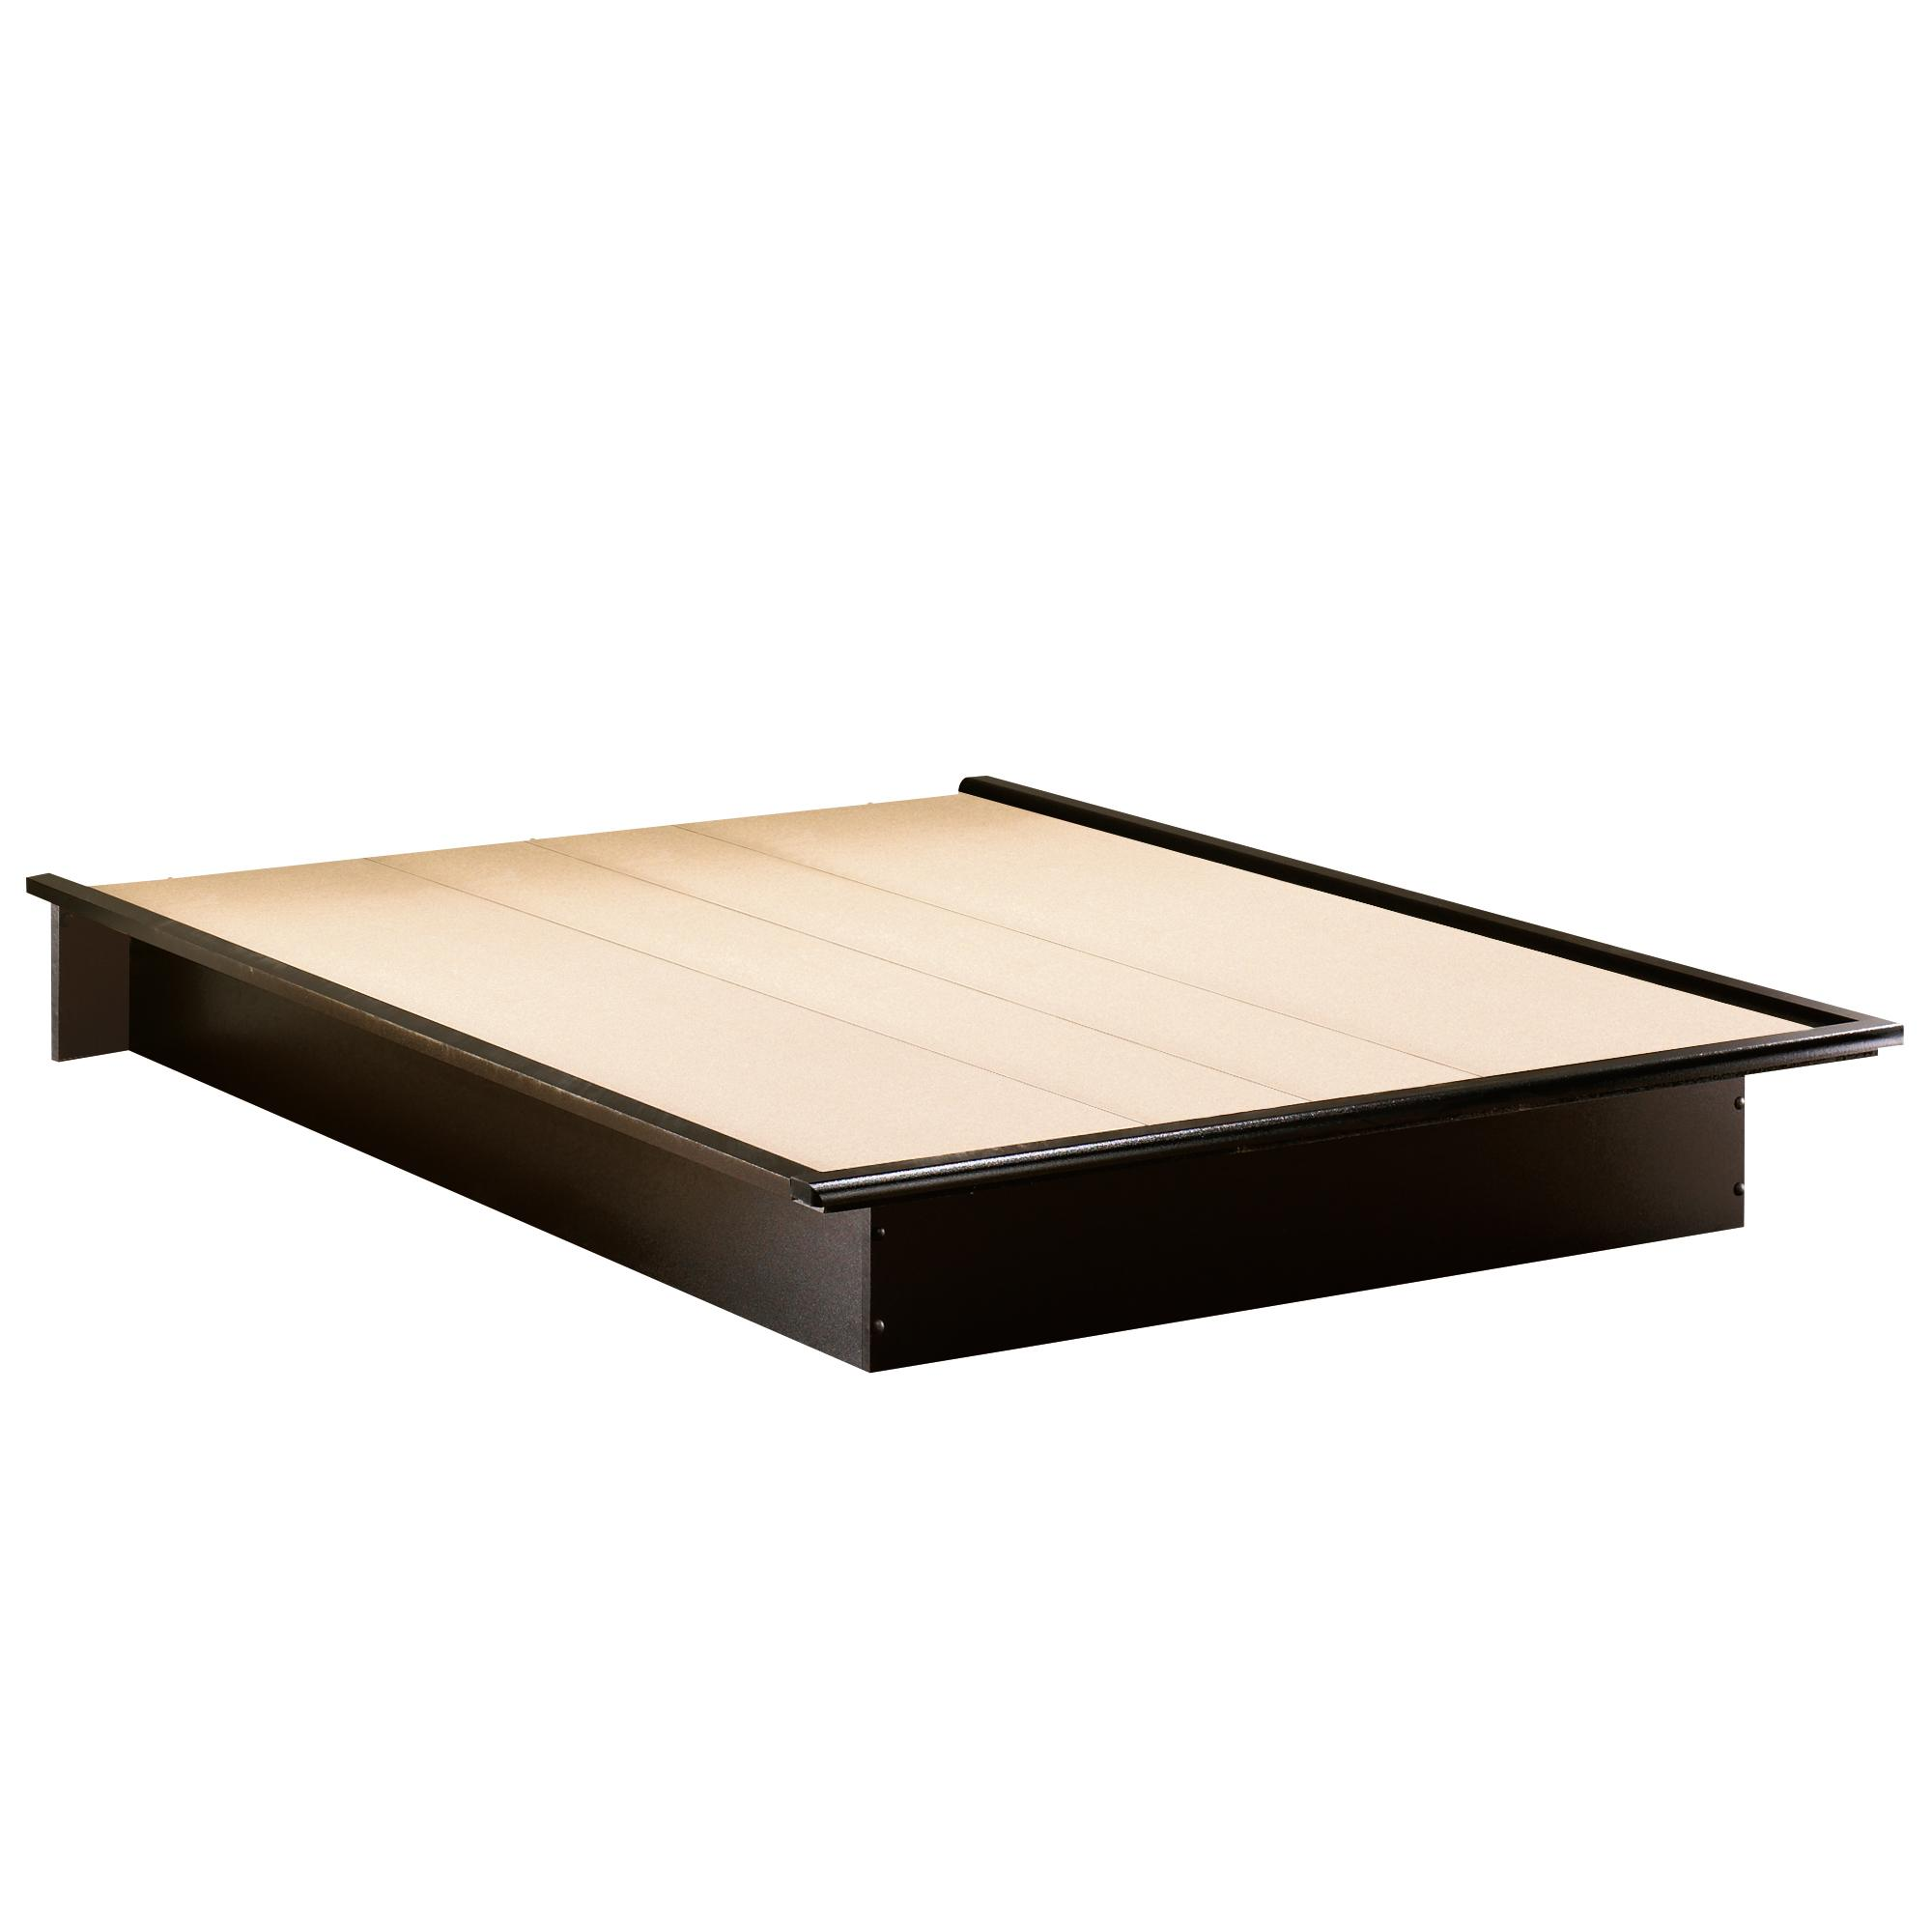 "South Shore Step One Queen Platform Bed (60"") in Pure Black by OJ ..."